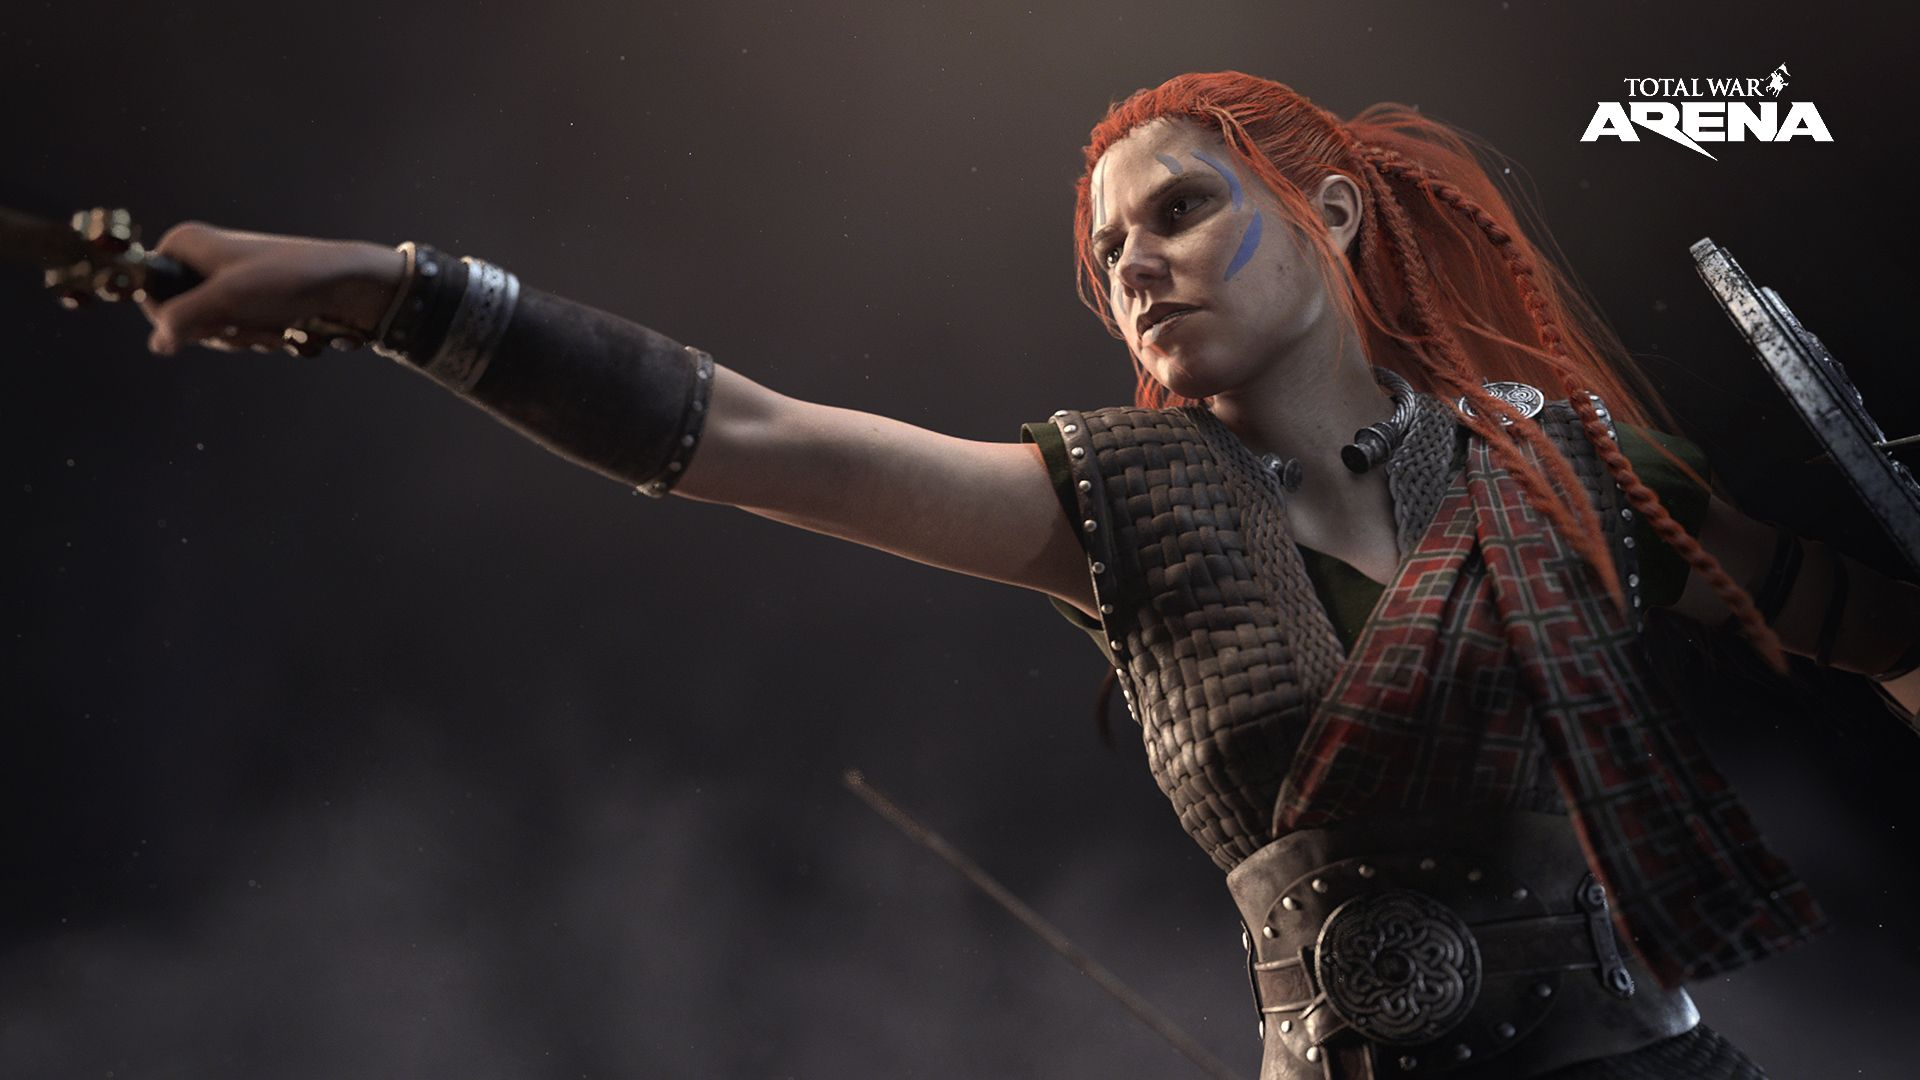 Total-War-Arena-Boudica-01